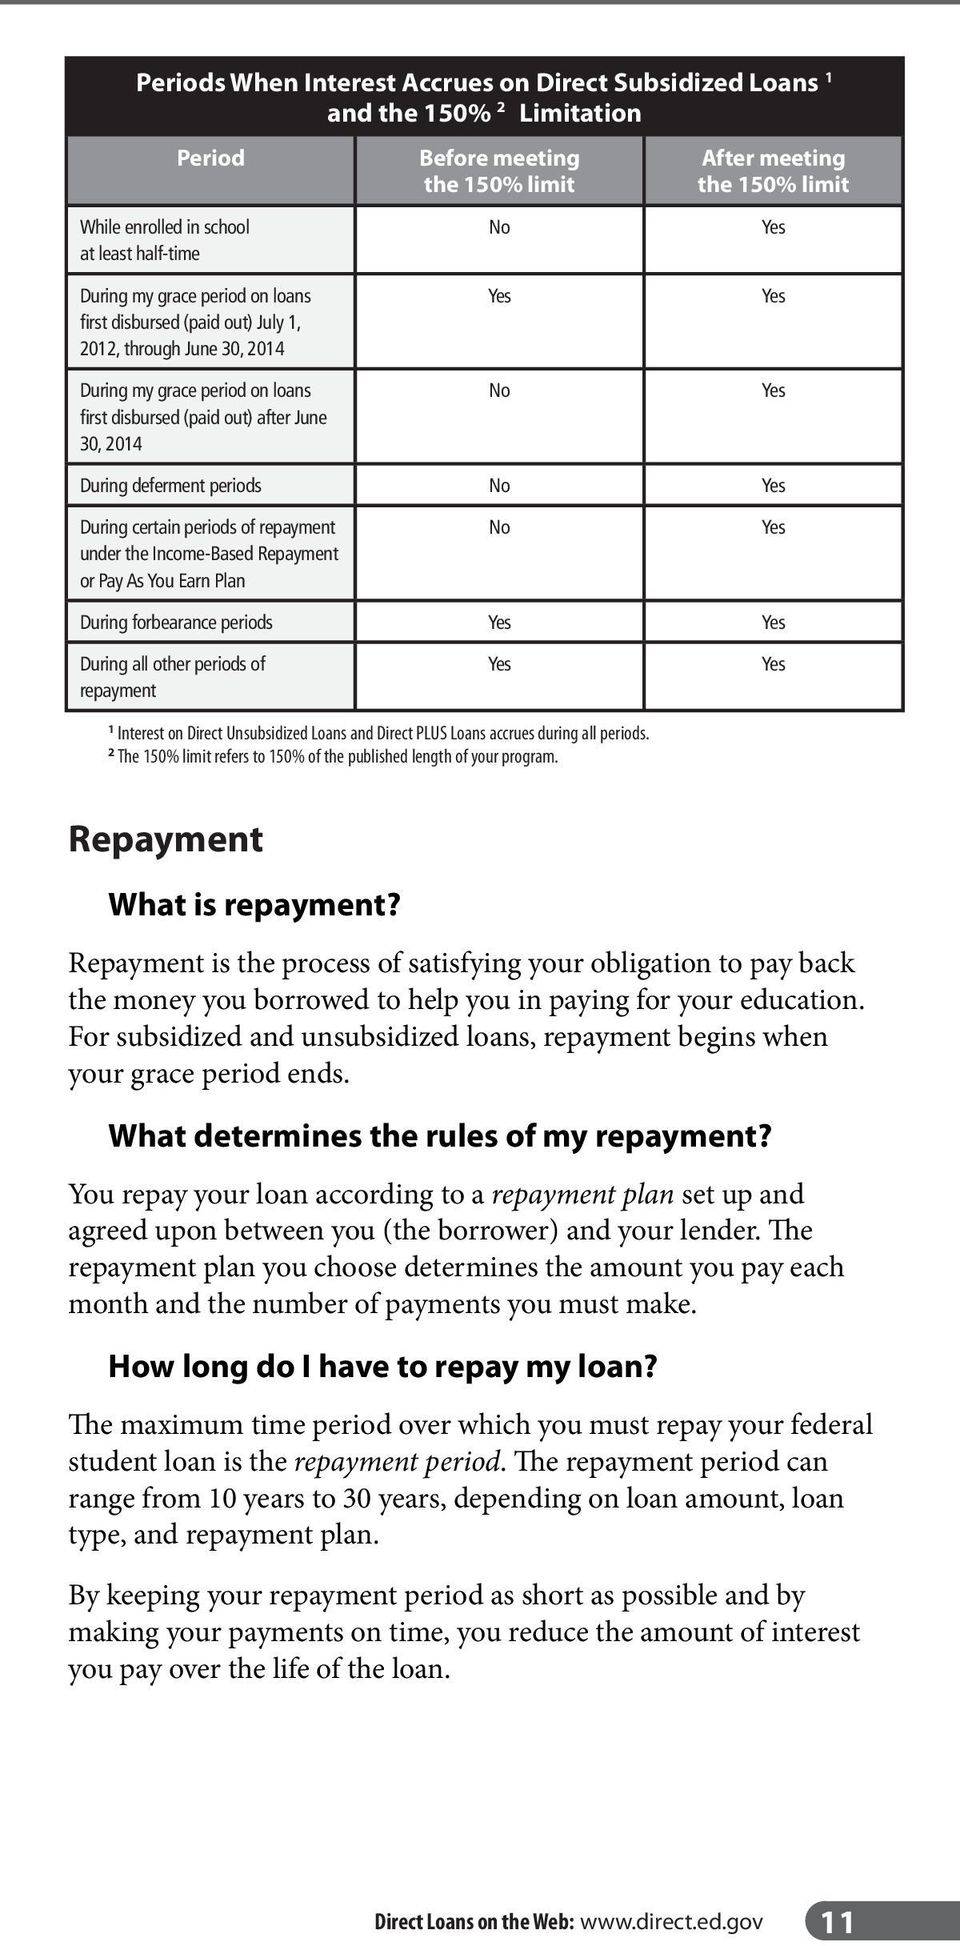 deferment periods No Yes During certain periods of repayment under the Income-Based Repayment or Pay As You Earn Plan No Yes During forbearance periods Yes Yes During all other periods of repayment